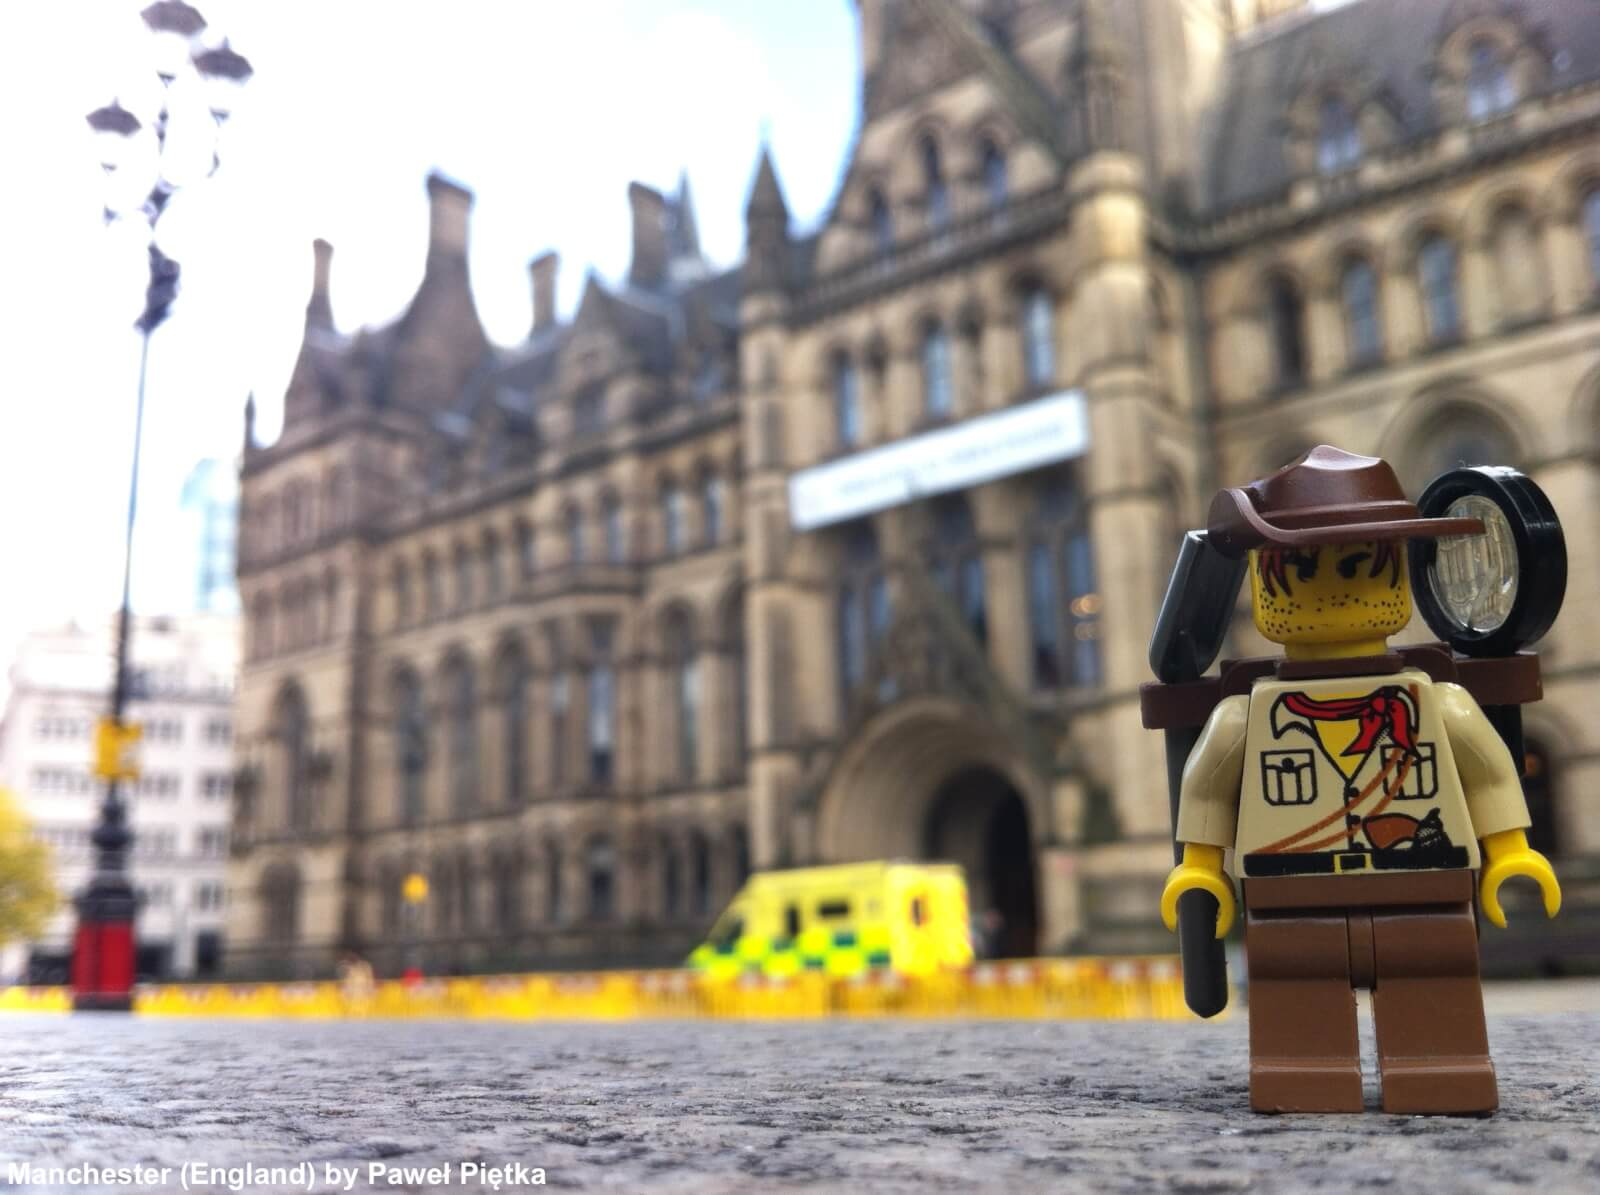 Manchester (England) - Town Hall